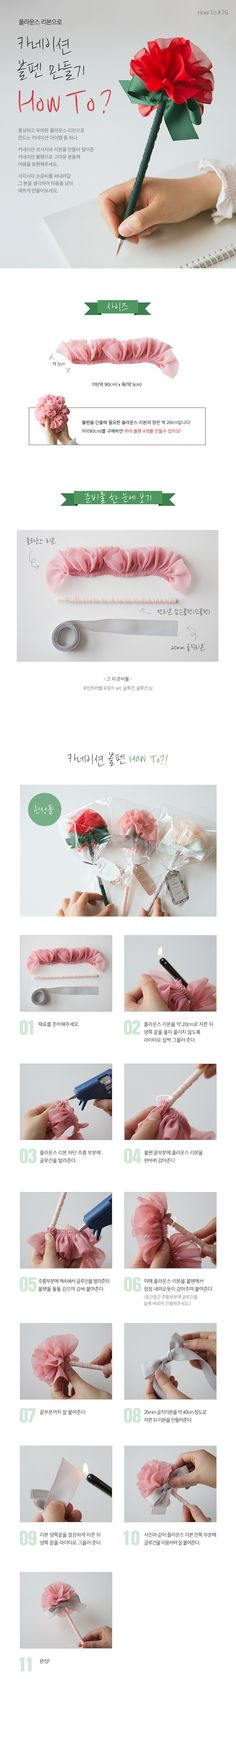 Chiffon carnation ballpoint pen how to DIY